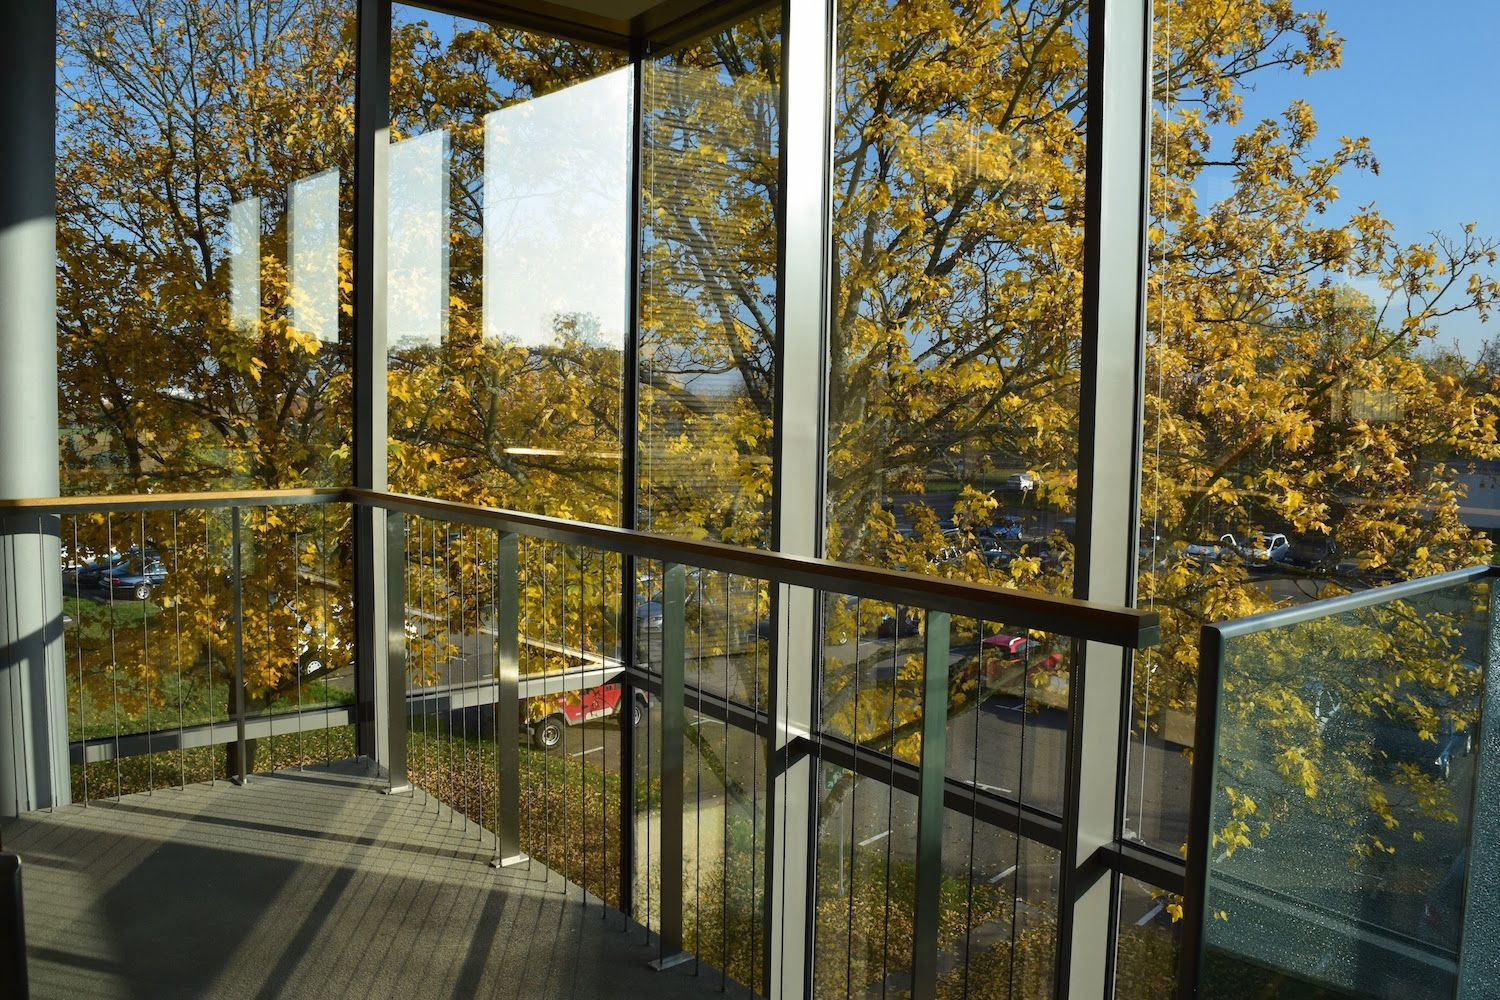 Second Floor View of Sammlung Froehlich, Germany